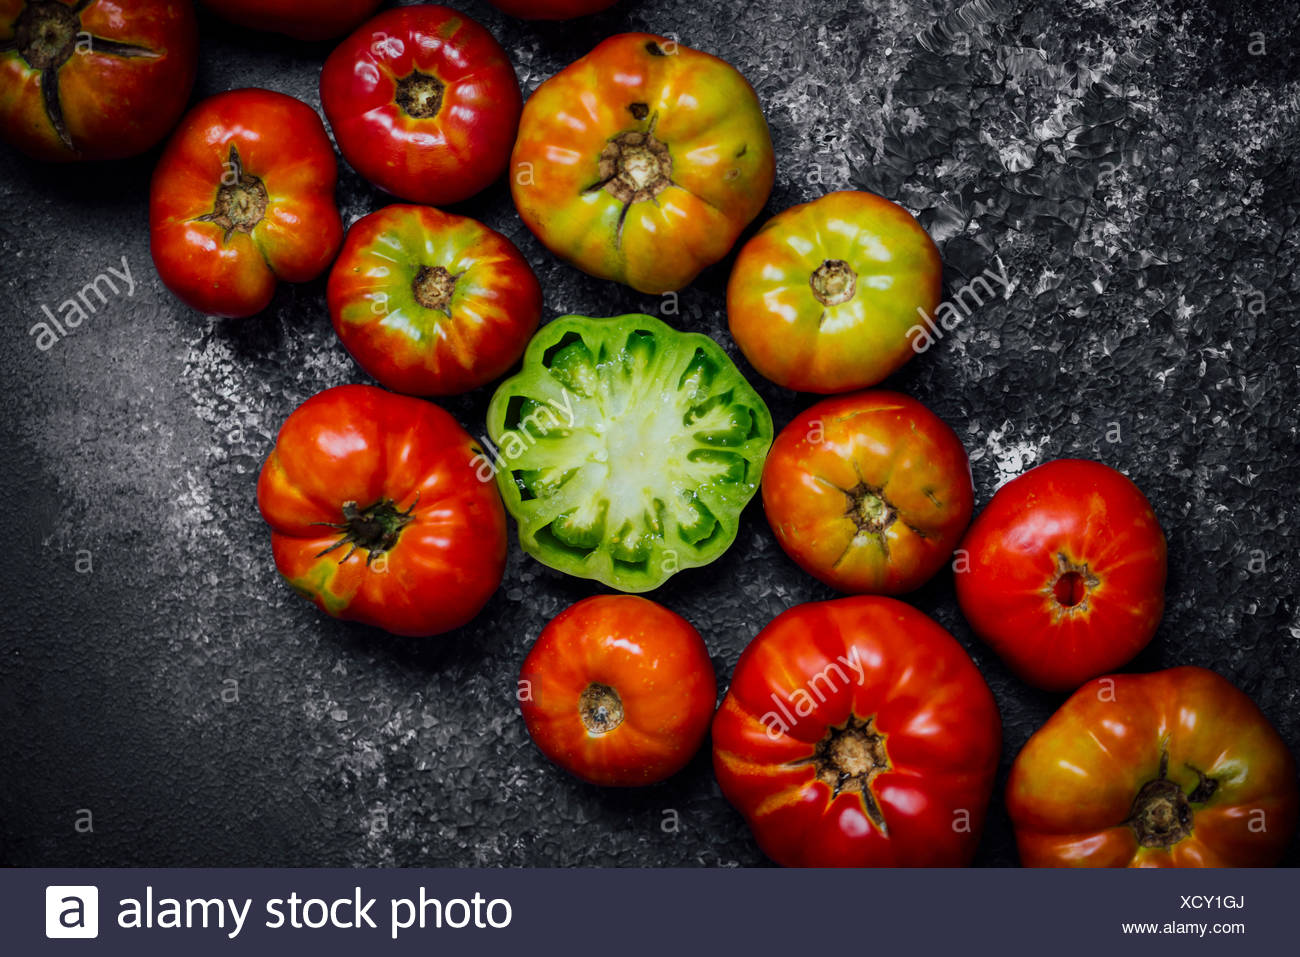 Heirloom Tomatoes gathered on a board and one halved green tomato is in the center. - Stock Image